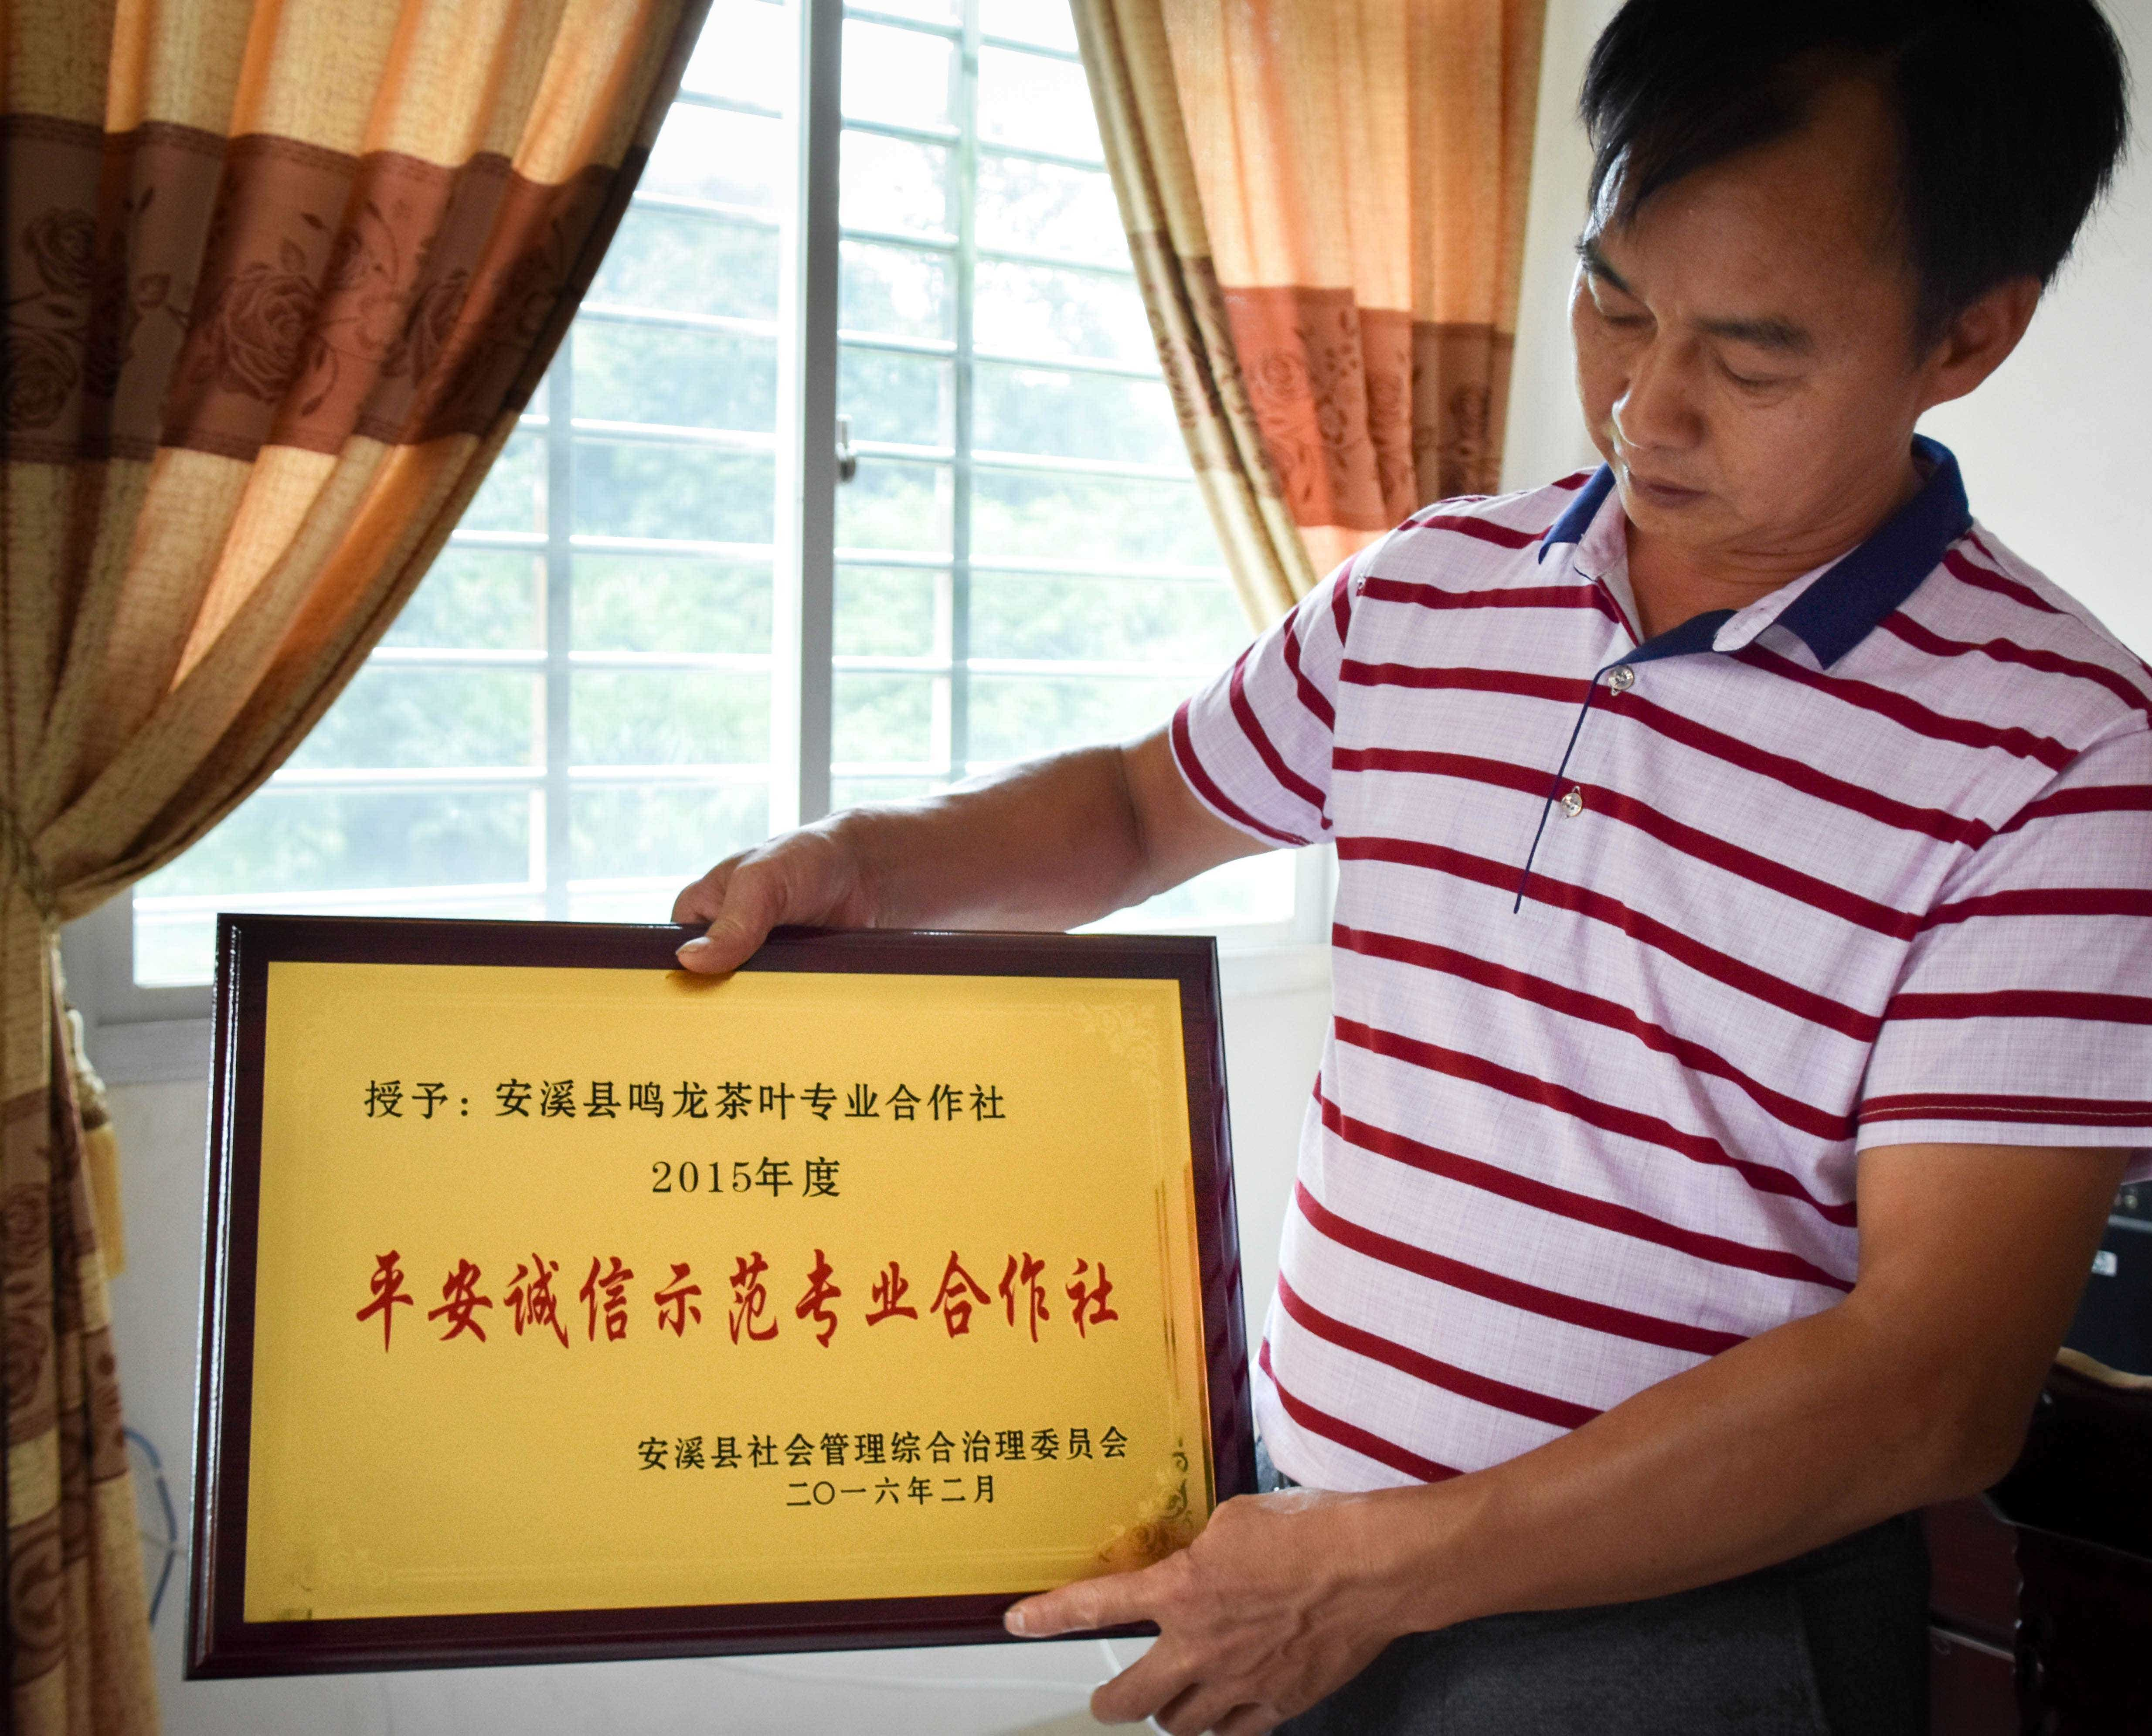 Zhang Rongde with his award recognizing his transparency & integrity